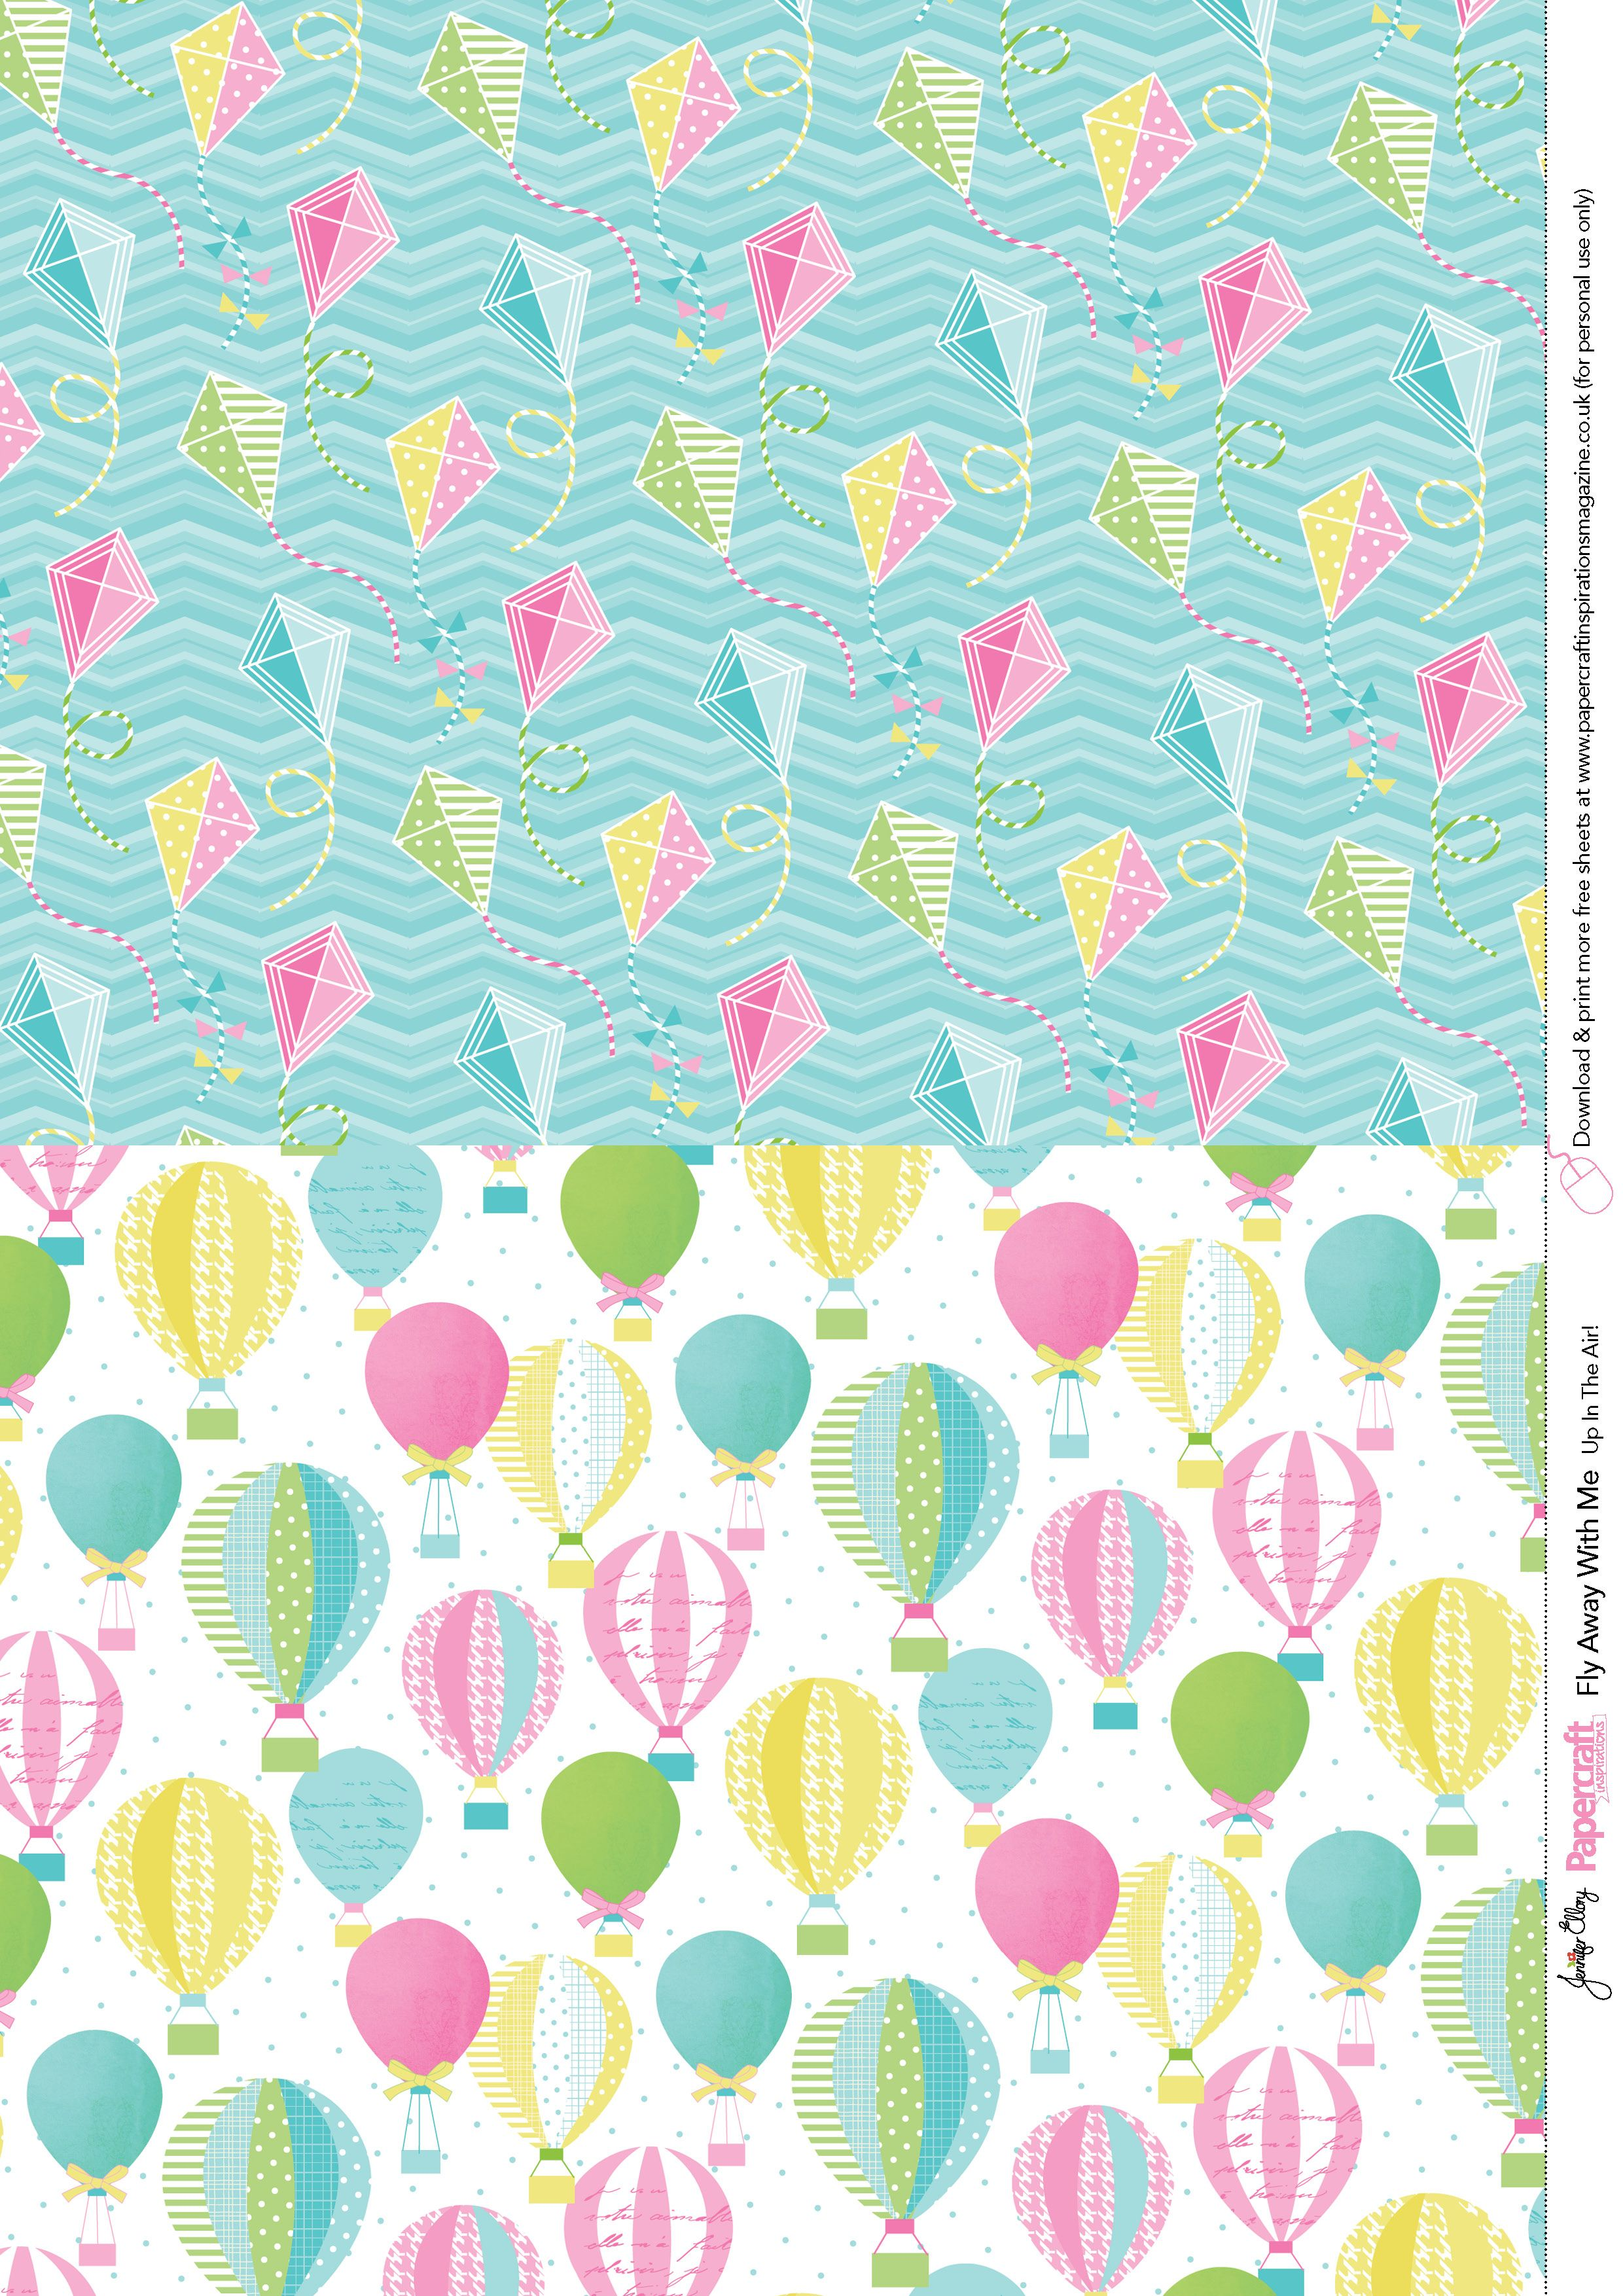 Fly Away With Me free printables from Papercraft inspirations 138